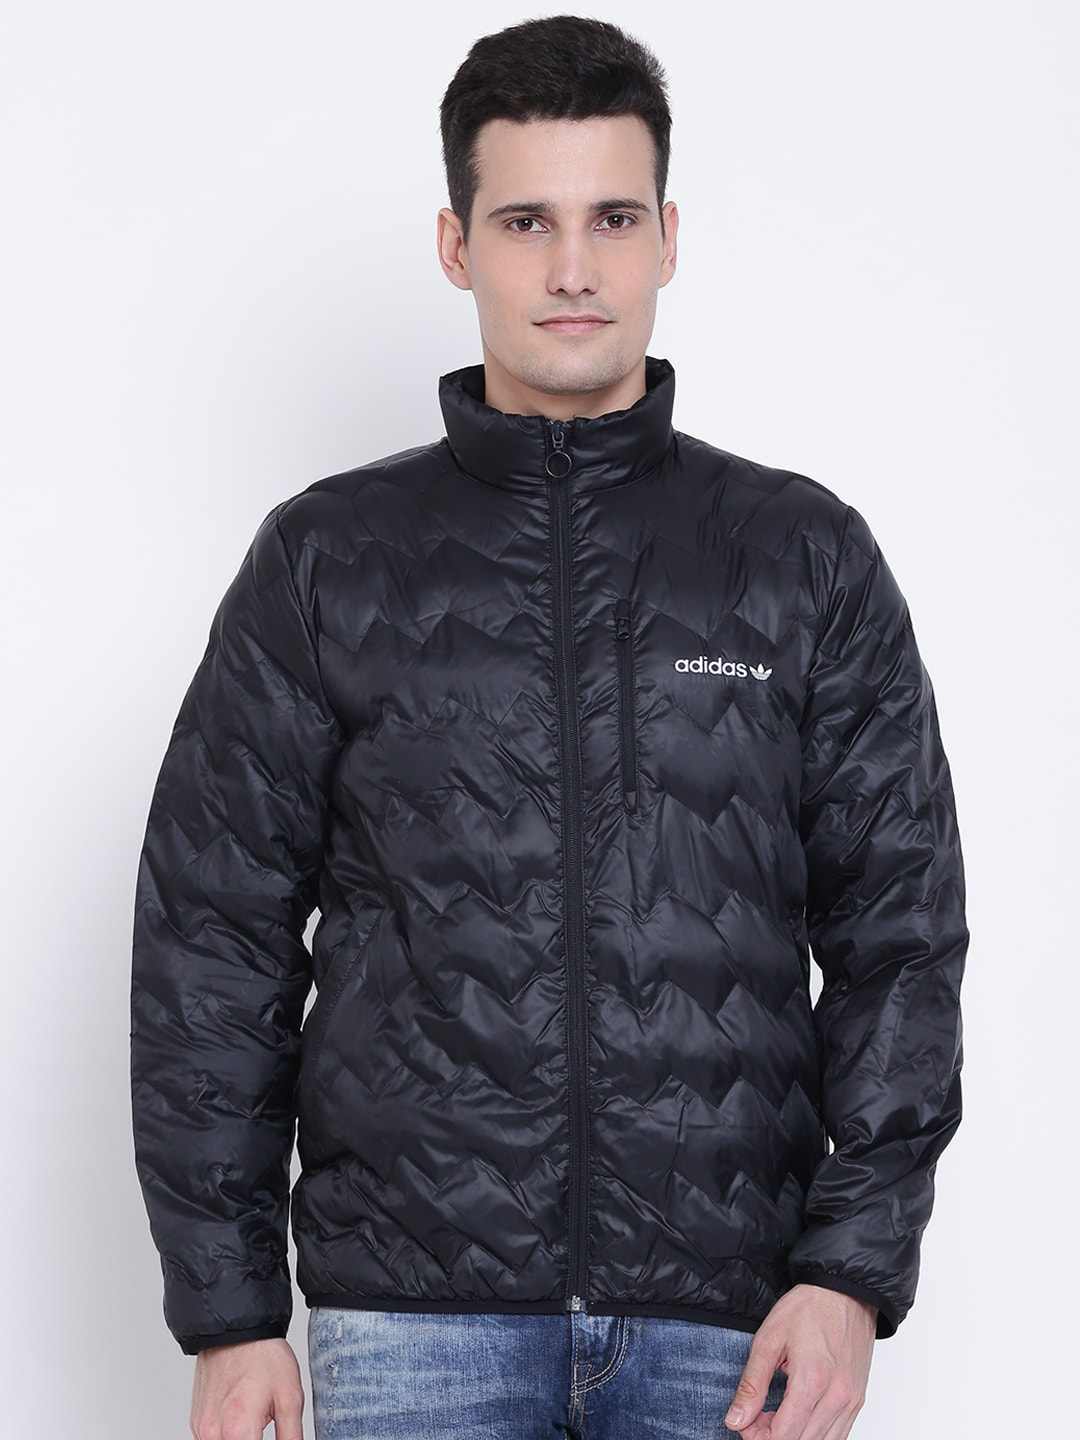 c80a9eea42e2 Adidas Solid Black Jackets - Buy Adidas Solid Black Jackets online in India